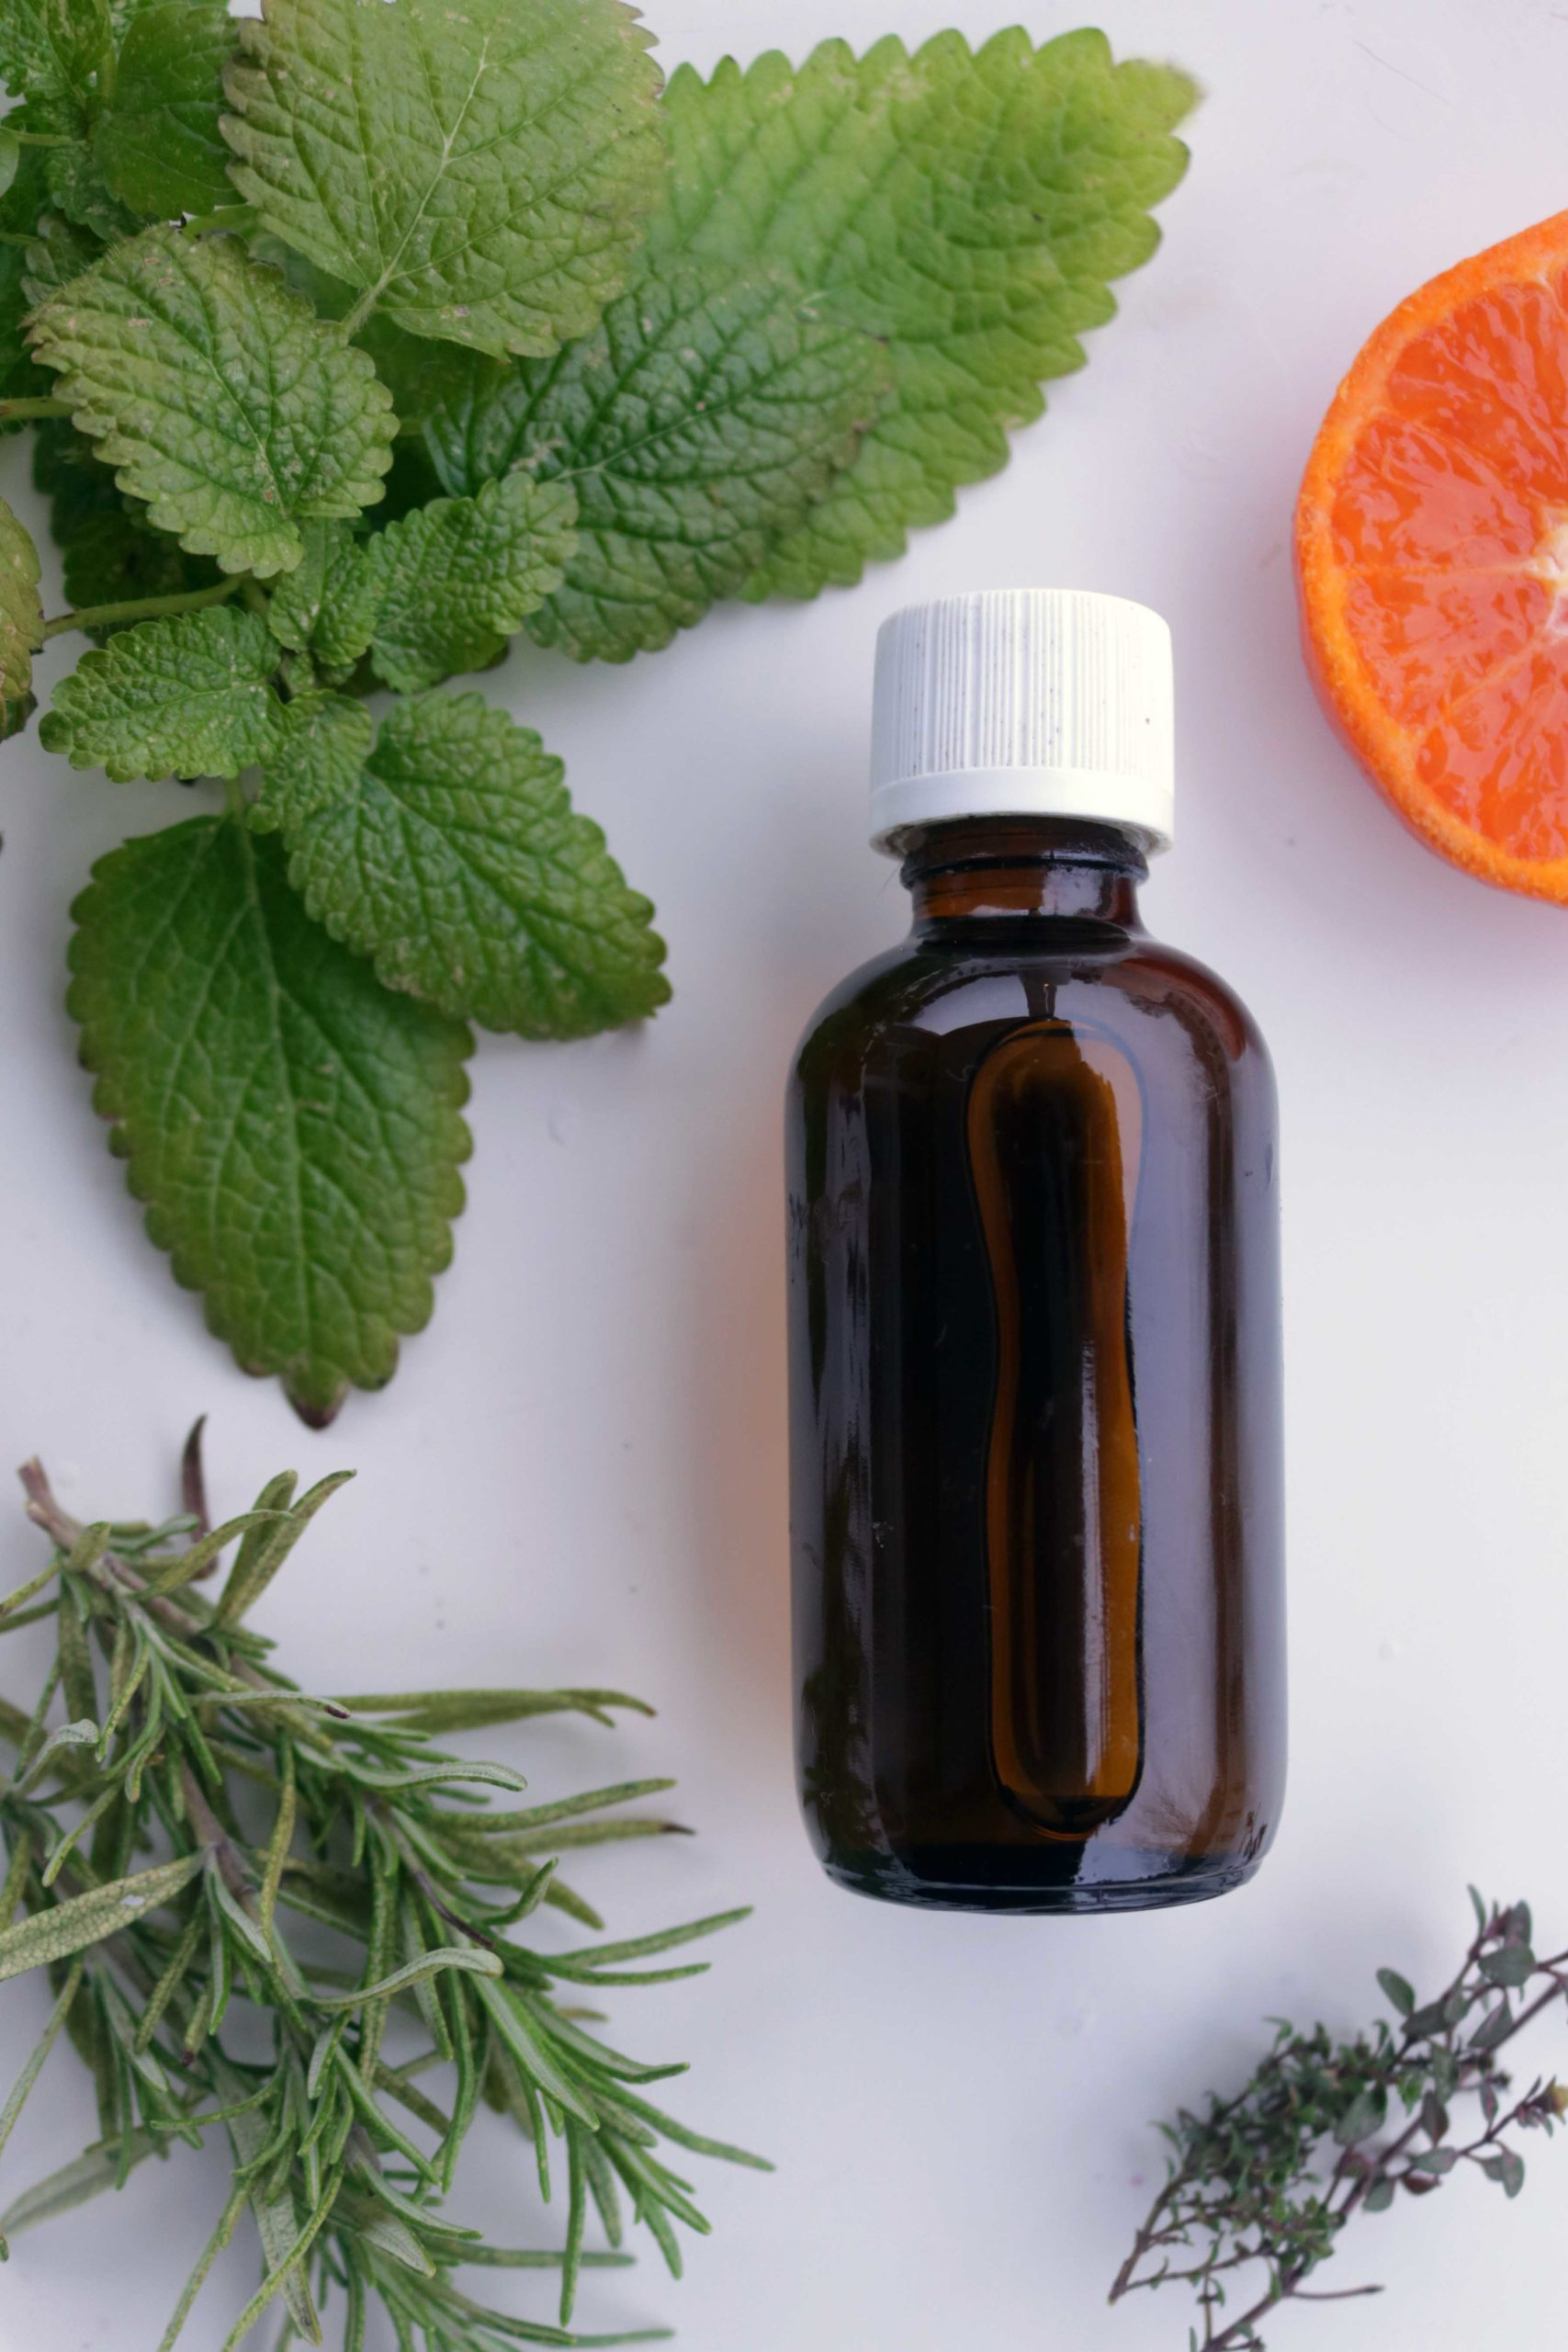 How to balance your mood using essential oils.